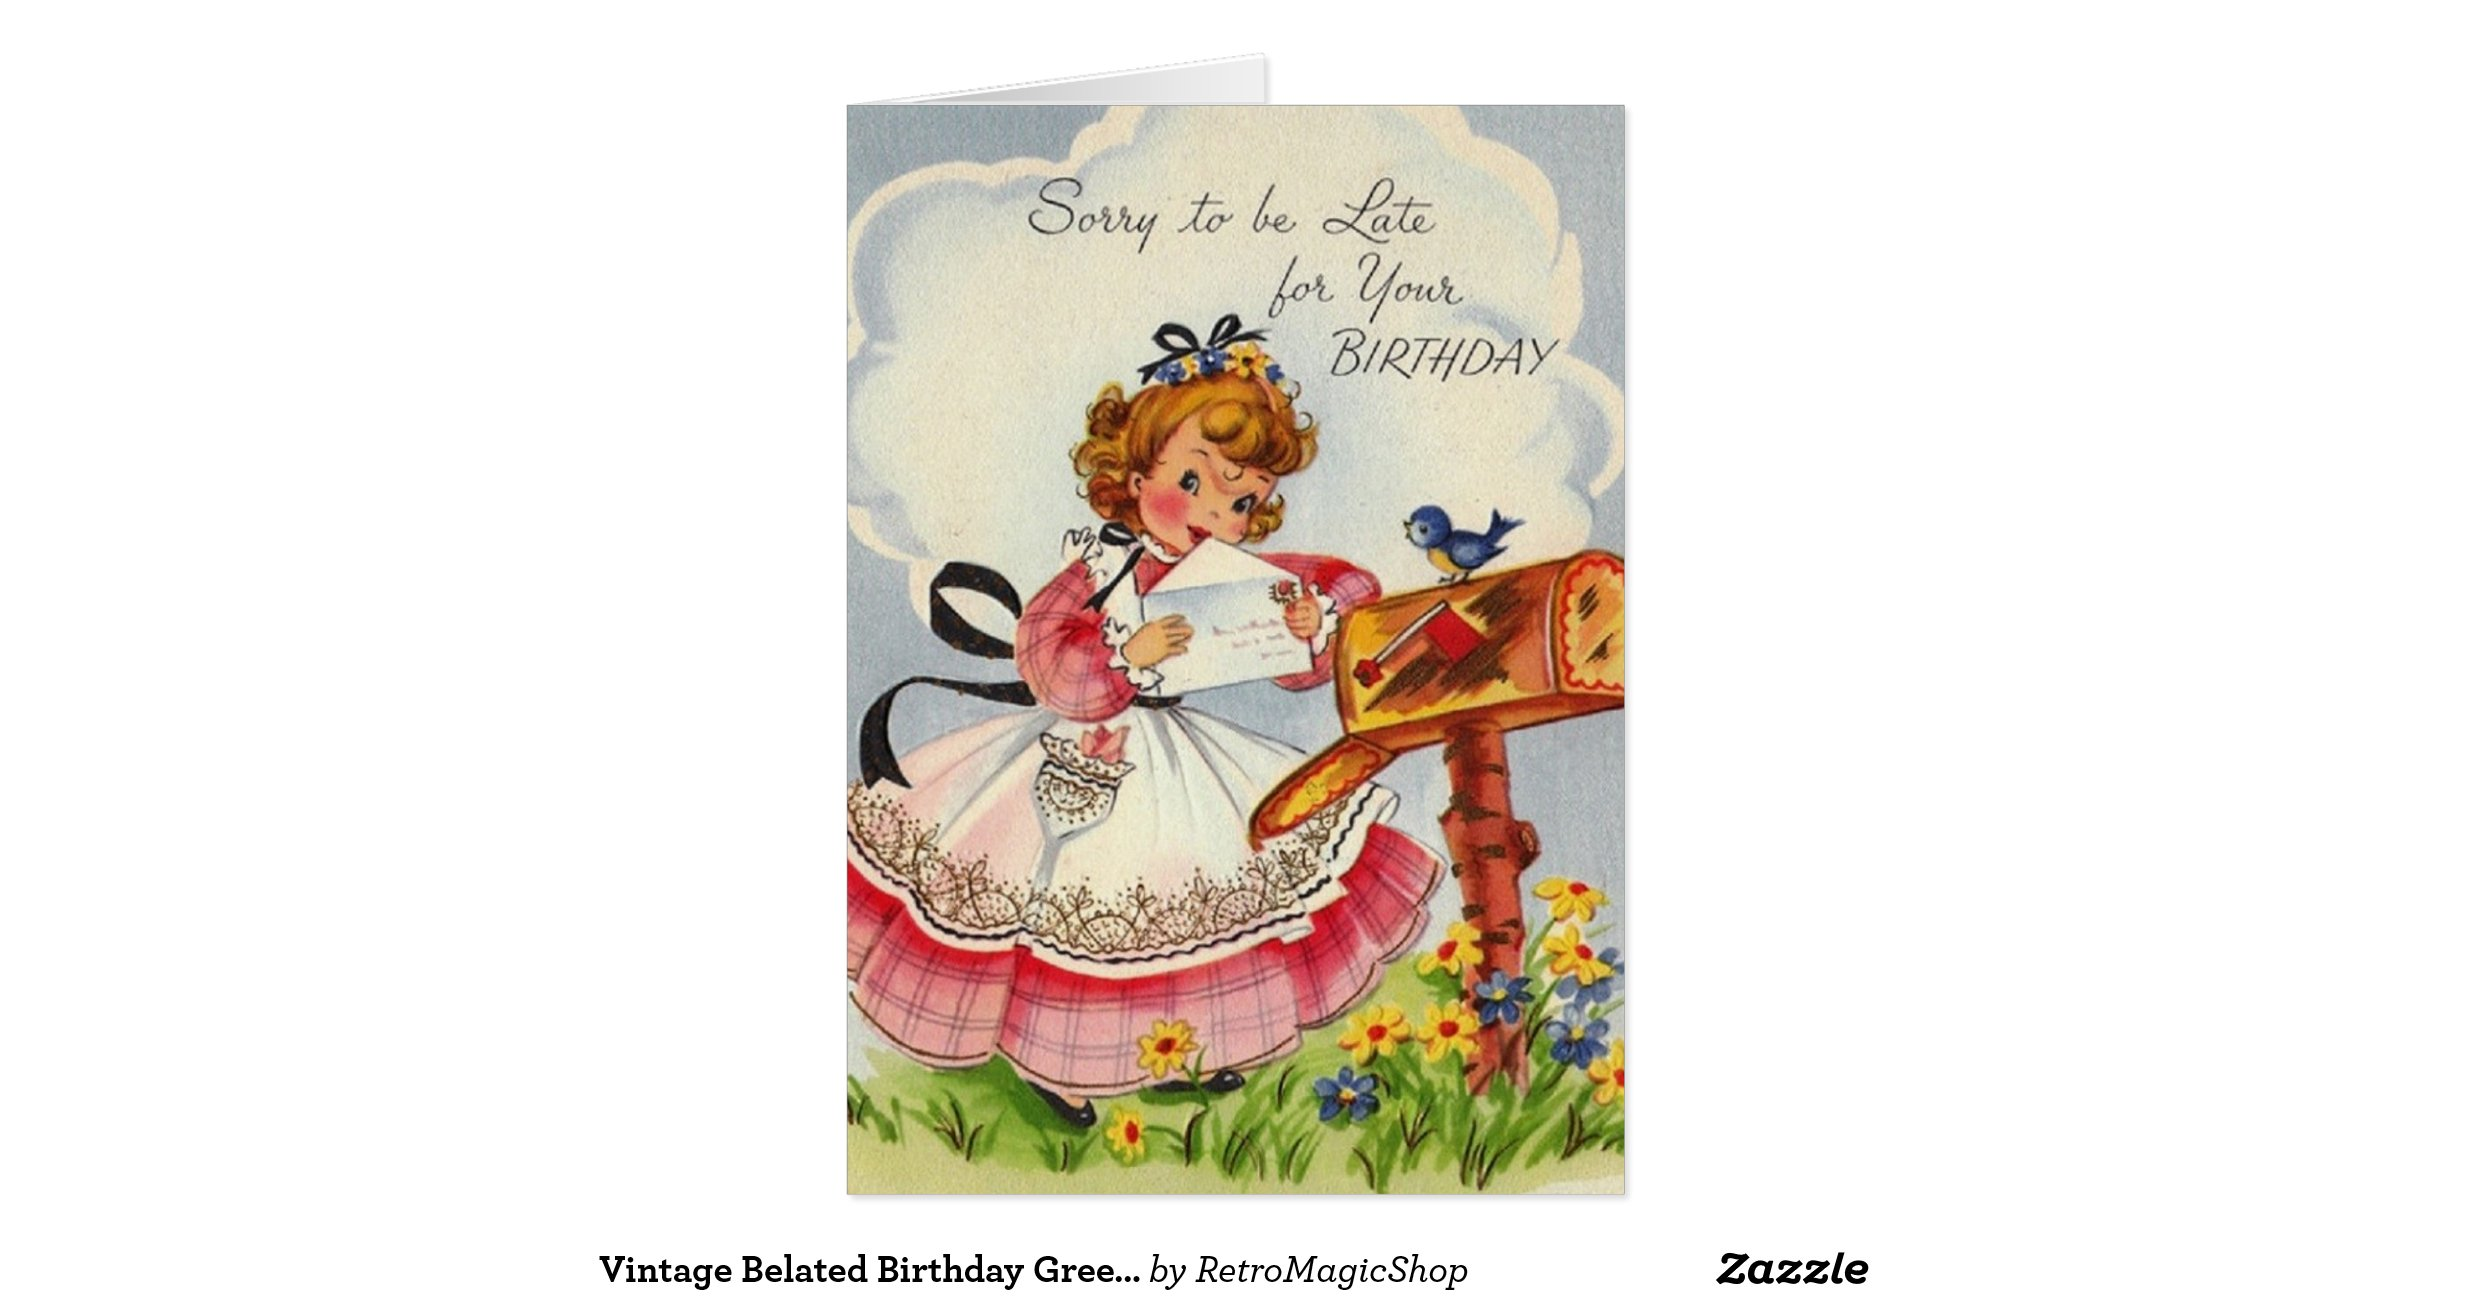 Snap Vintage Belated Birthday Greeting Card Zazzle Photos On